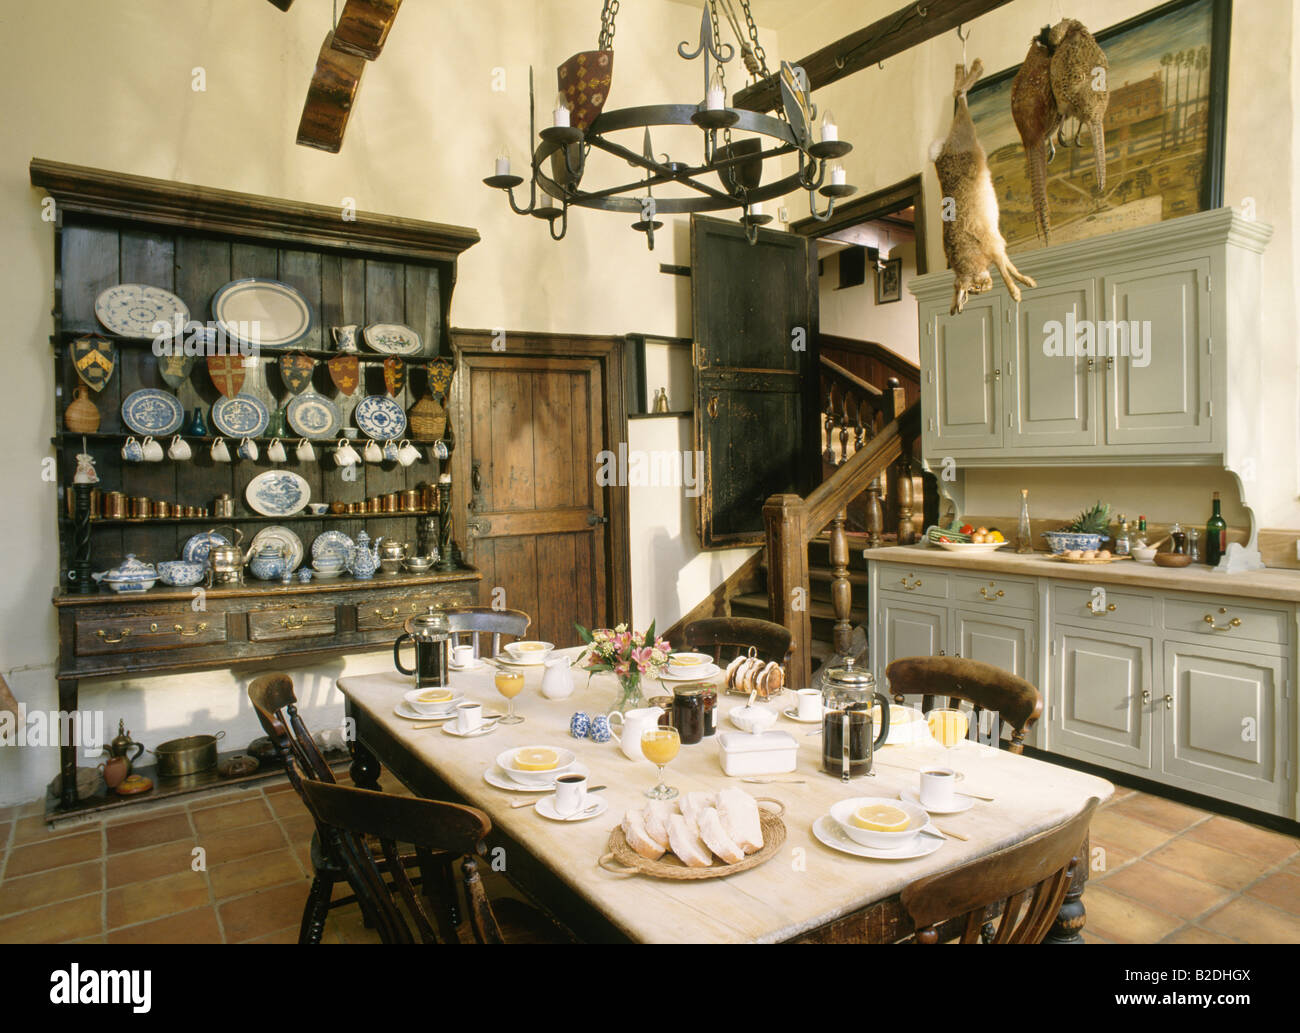 Mobile Island For Kitchen Table Set For Breakfast In Large Old Fashioned Kitchen